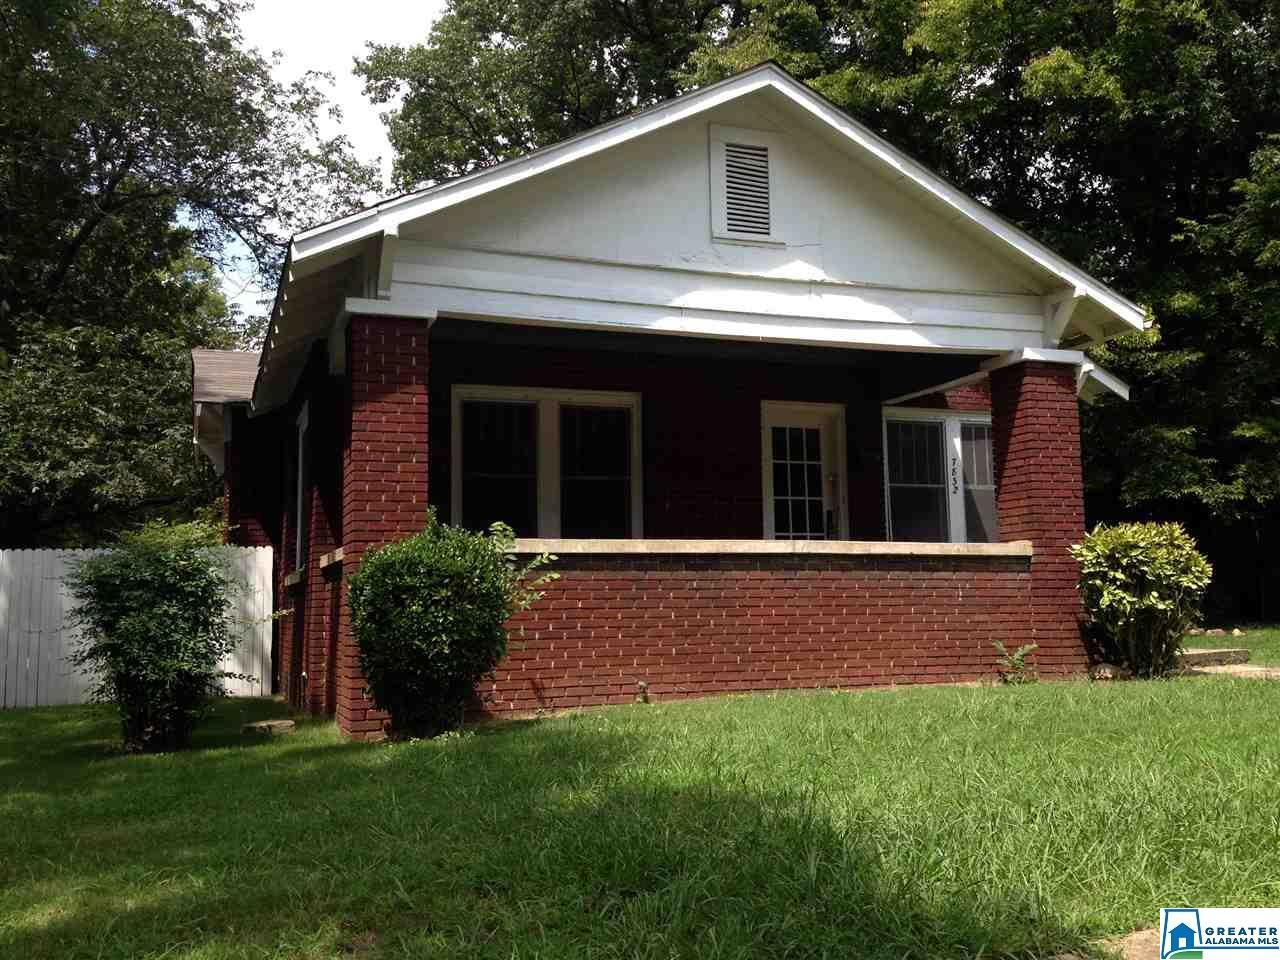 7832 6TH AVE N, Birmingham, AL 35206 - MLS#: 897829